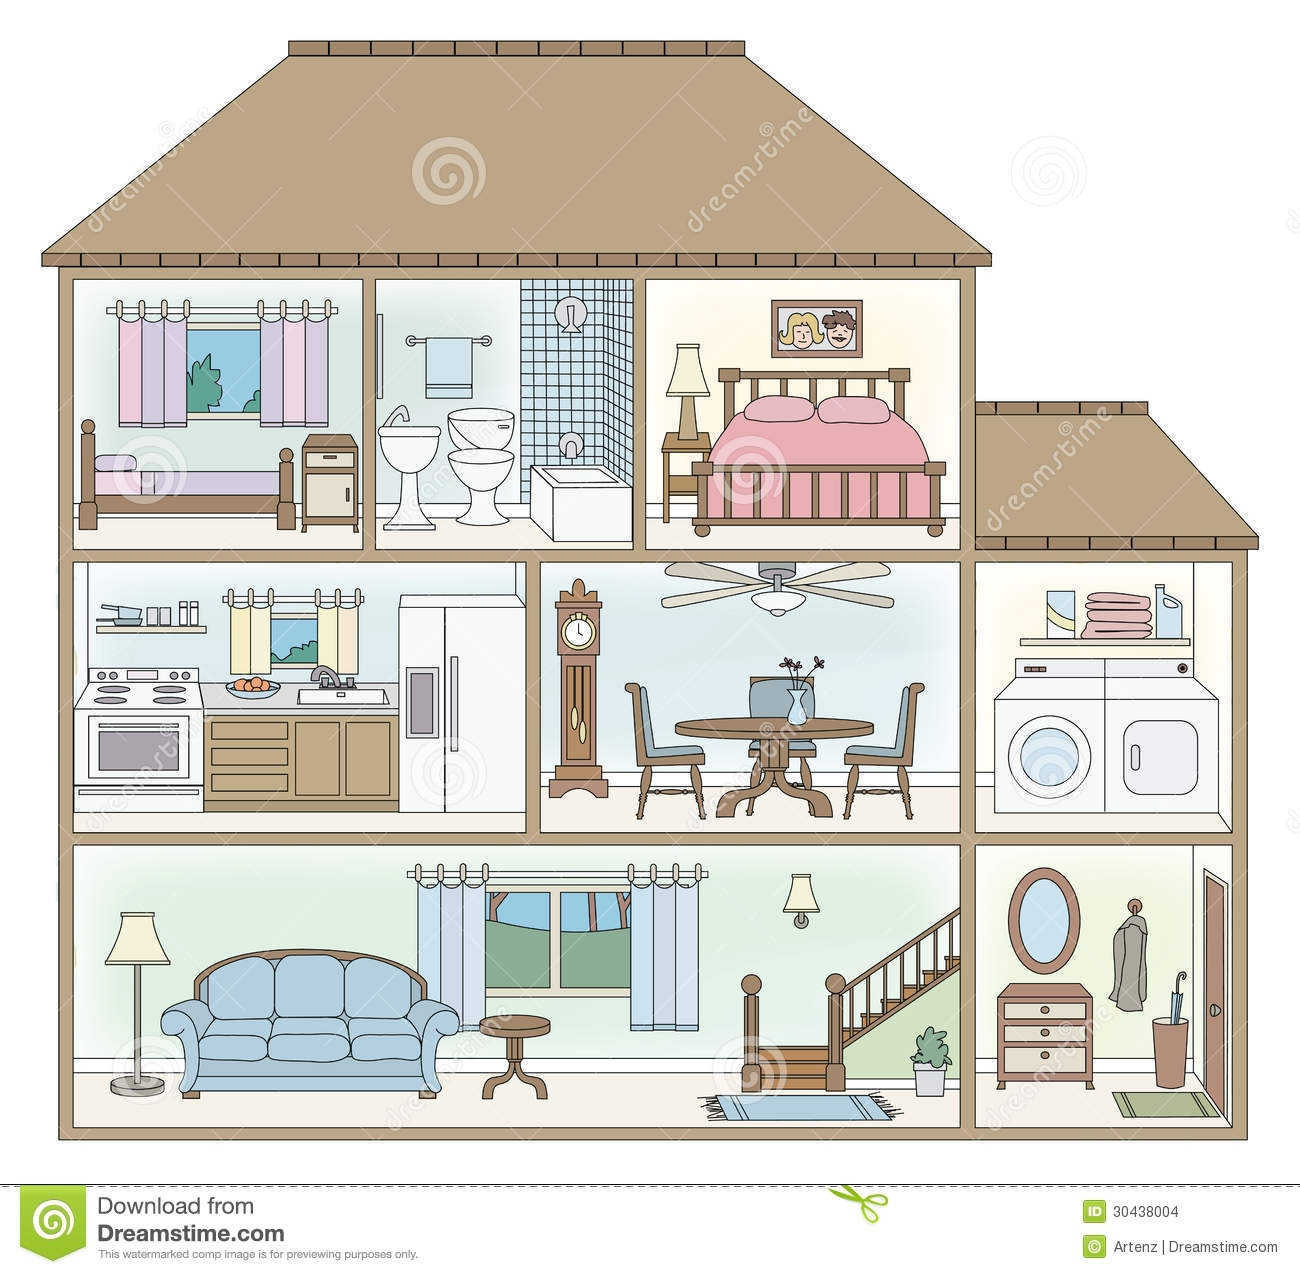 Bungalow clipart inside house Drawing House interior Inside Design